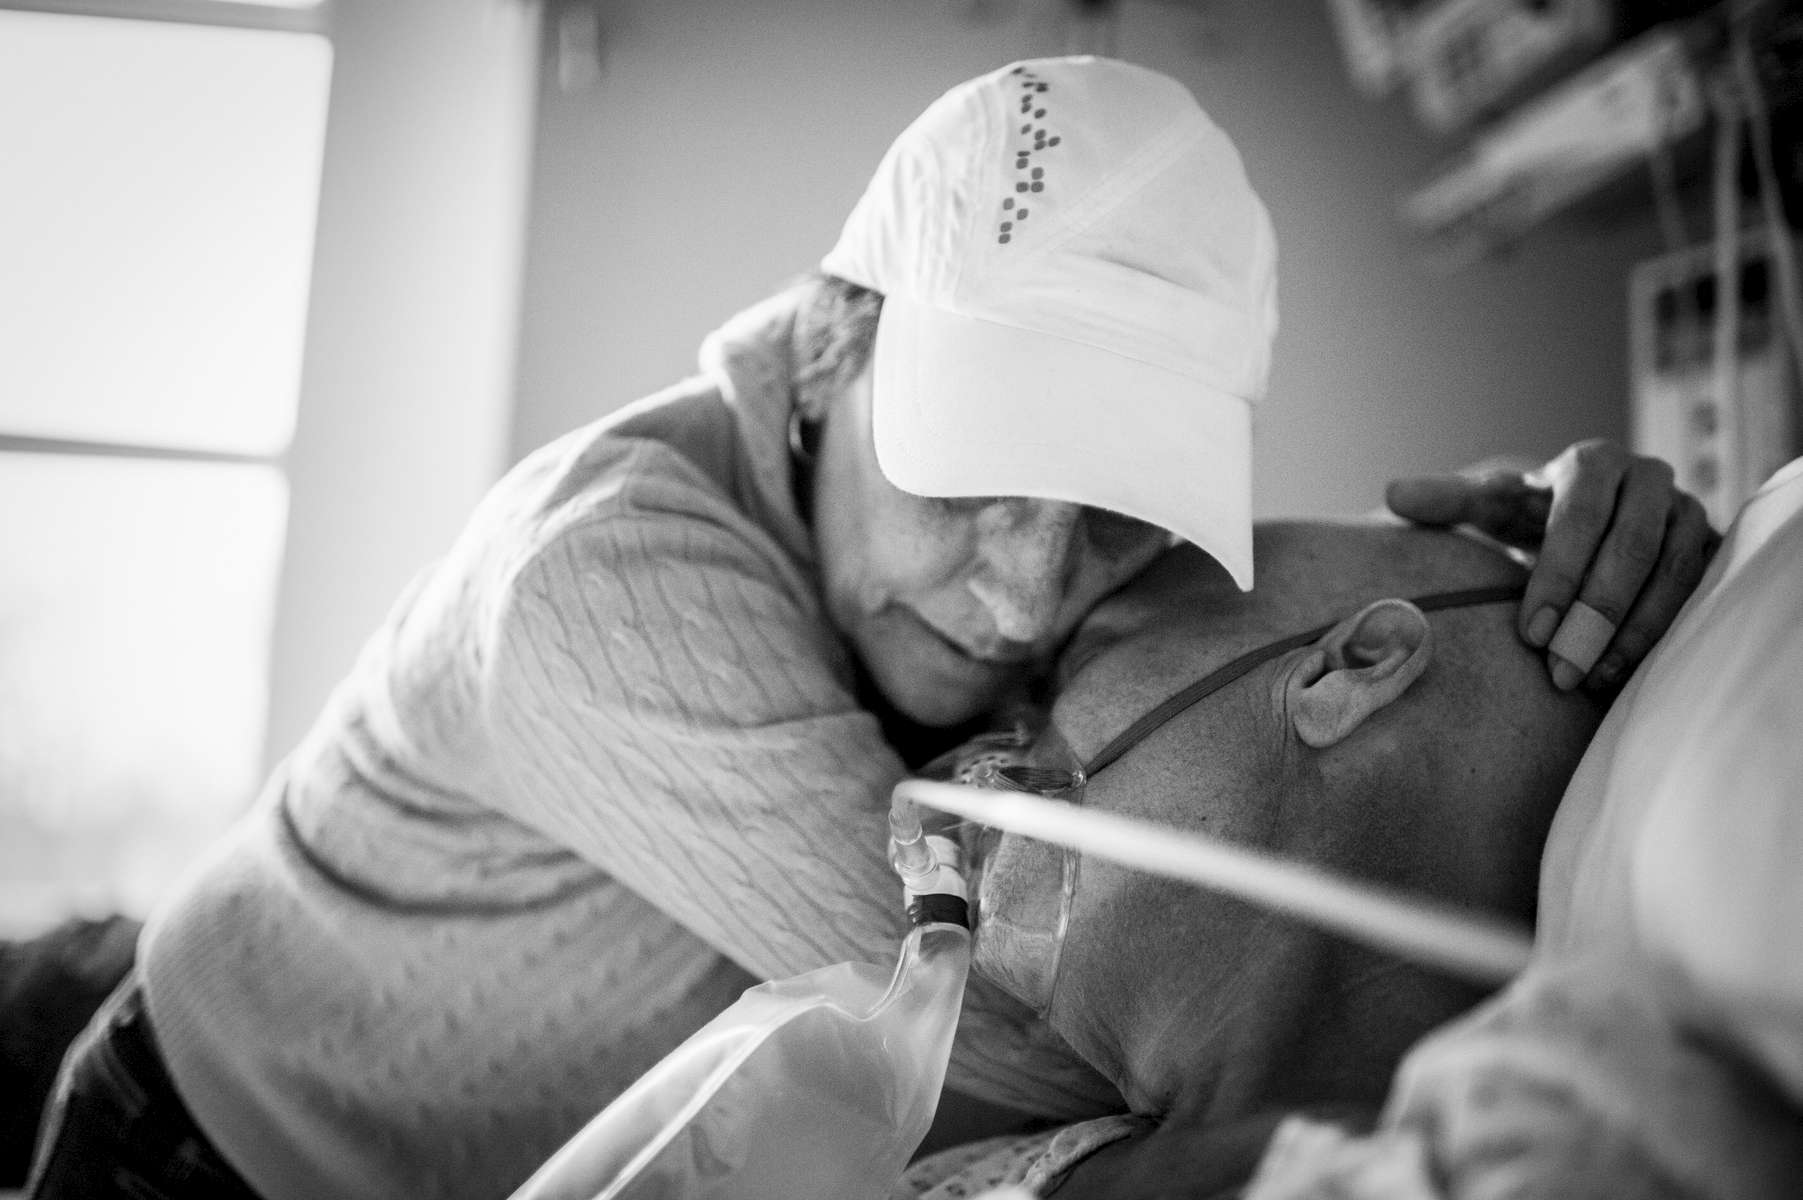 Laurel Borowick embraces husband Howard in the ICU after hearing news that the cancer had spread and there was little the doctors could do besides make him as comfortable as possible. Greenwich, Connecticut. December 2013.